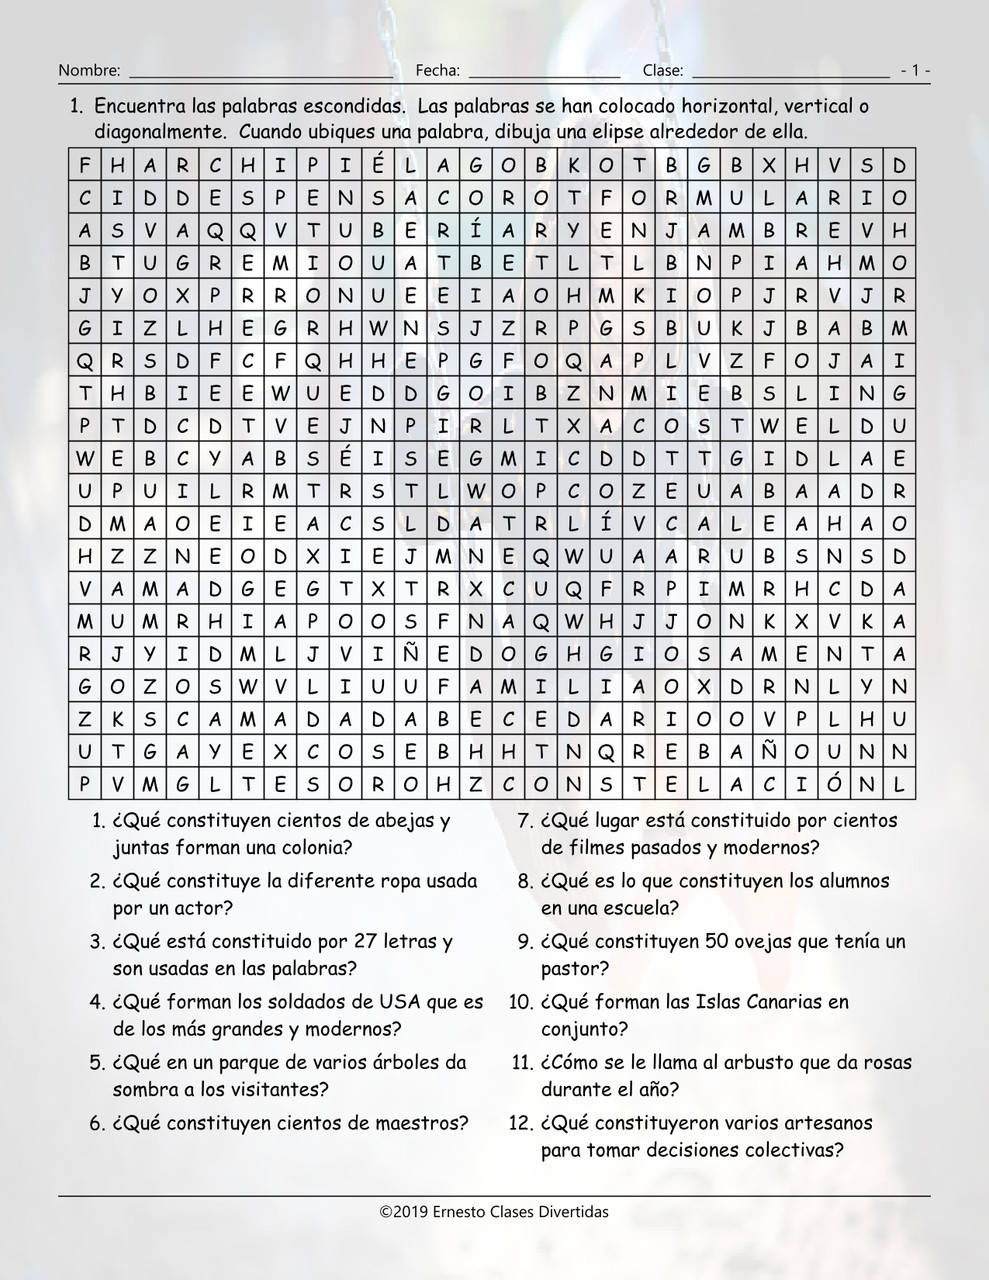 Collective Nouns Spanish Word Search Worksheet - Amped Up Learning [ 1280 x 989 Pixel ]